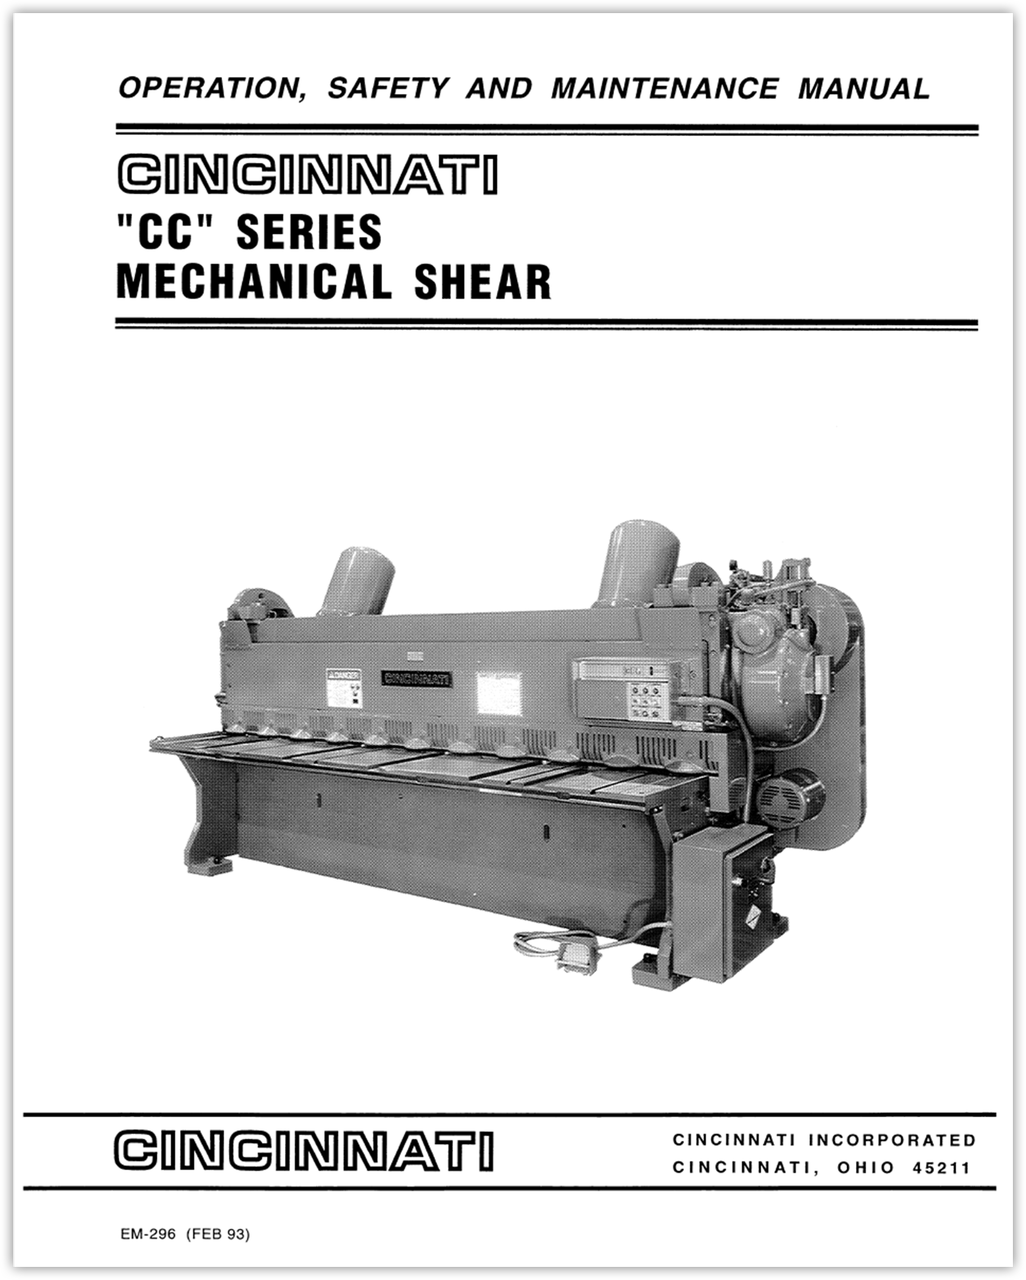 EM-296 (FEB 93) CC Series Mechanical Shear Operation, Safety and Maintenance